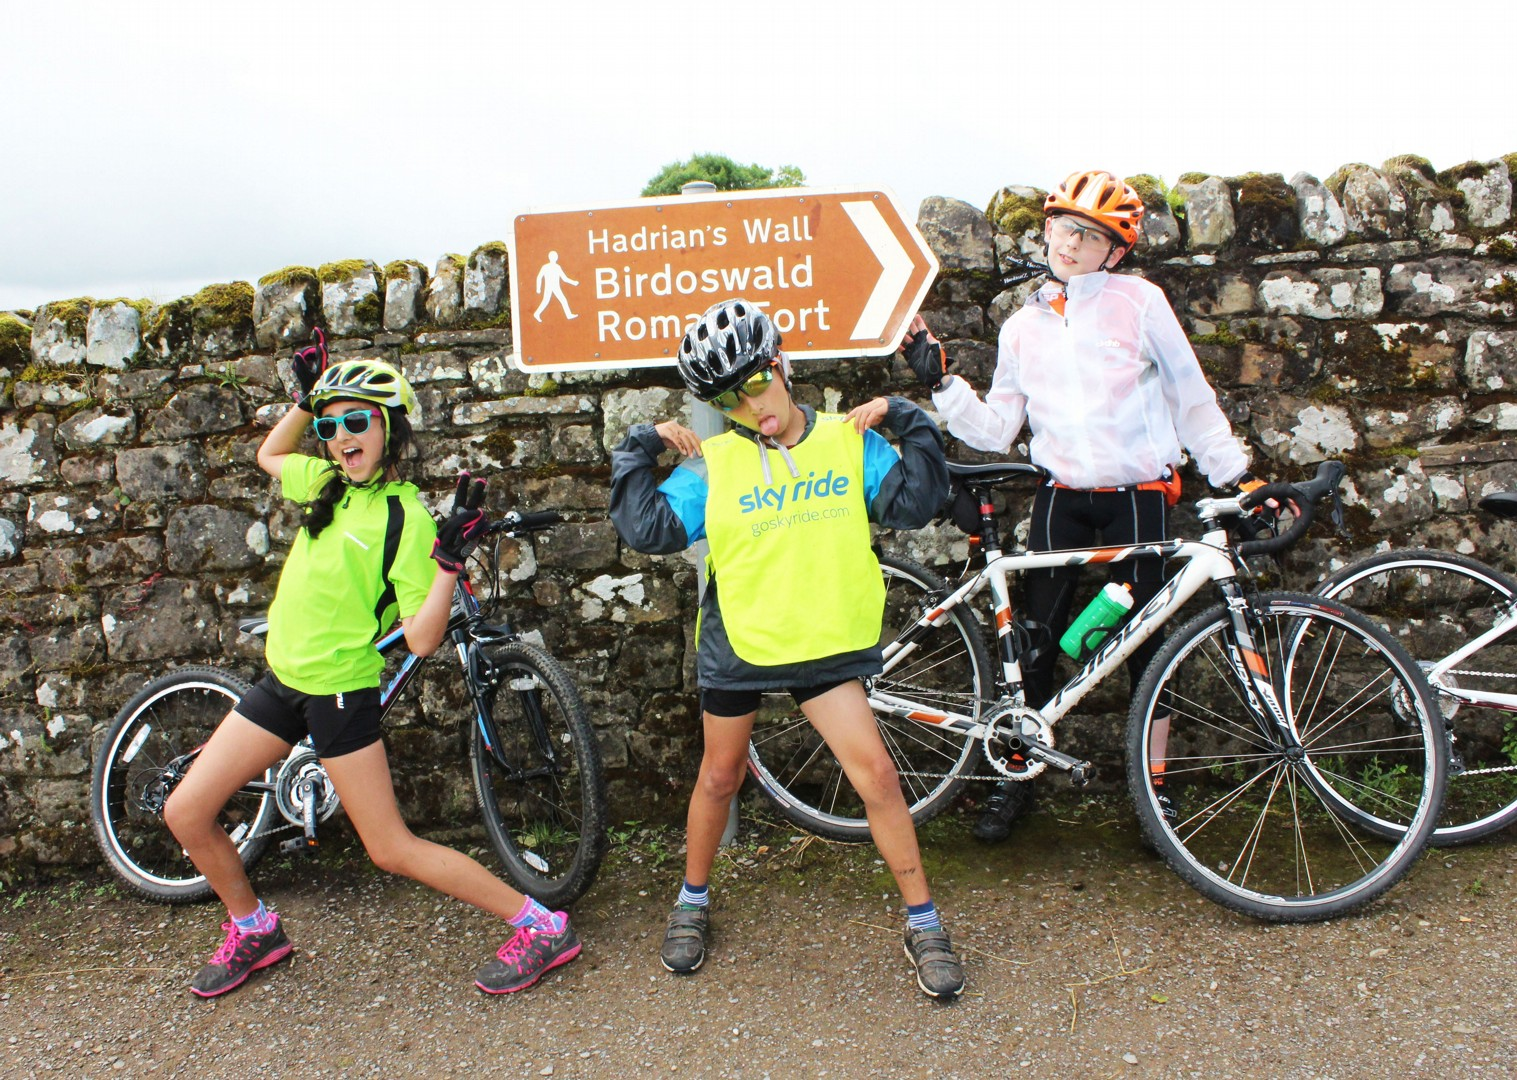 hadrians-cycleway-family-holiday-supported.jpg - UK - Hadrian's Cycleway 4 Day - Supported Family Cycling Holiday - Family Cycling